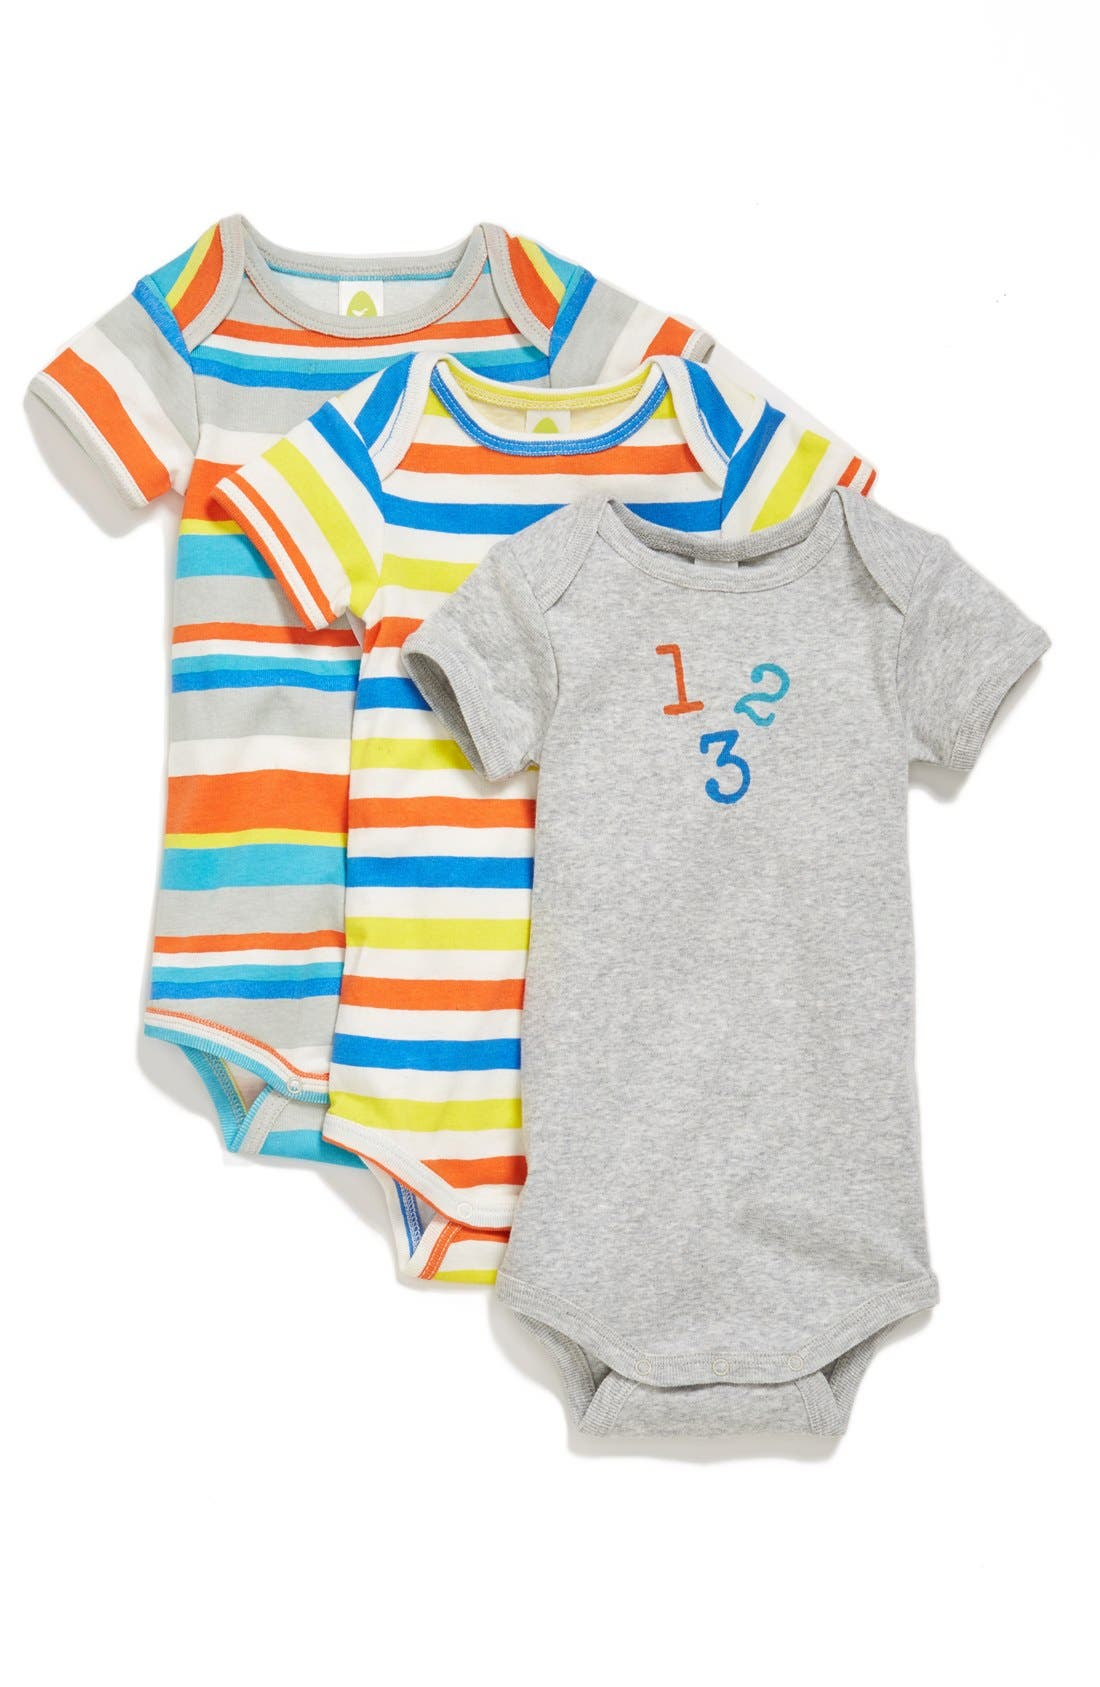 Main Image - Stem Baby Organic Cotton Bodysuit (3-Pack) (Baby Boys) (Nordstrom Exclusive)